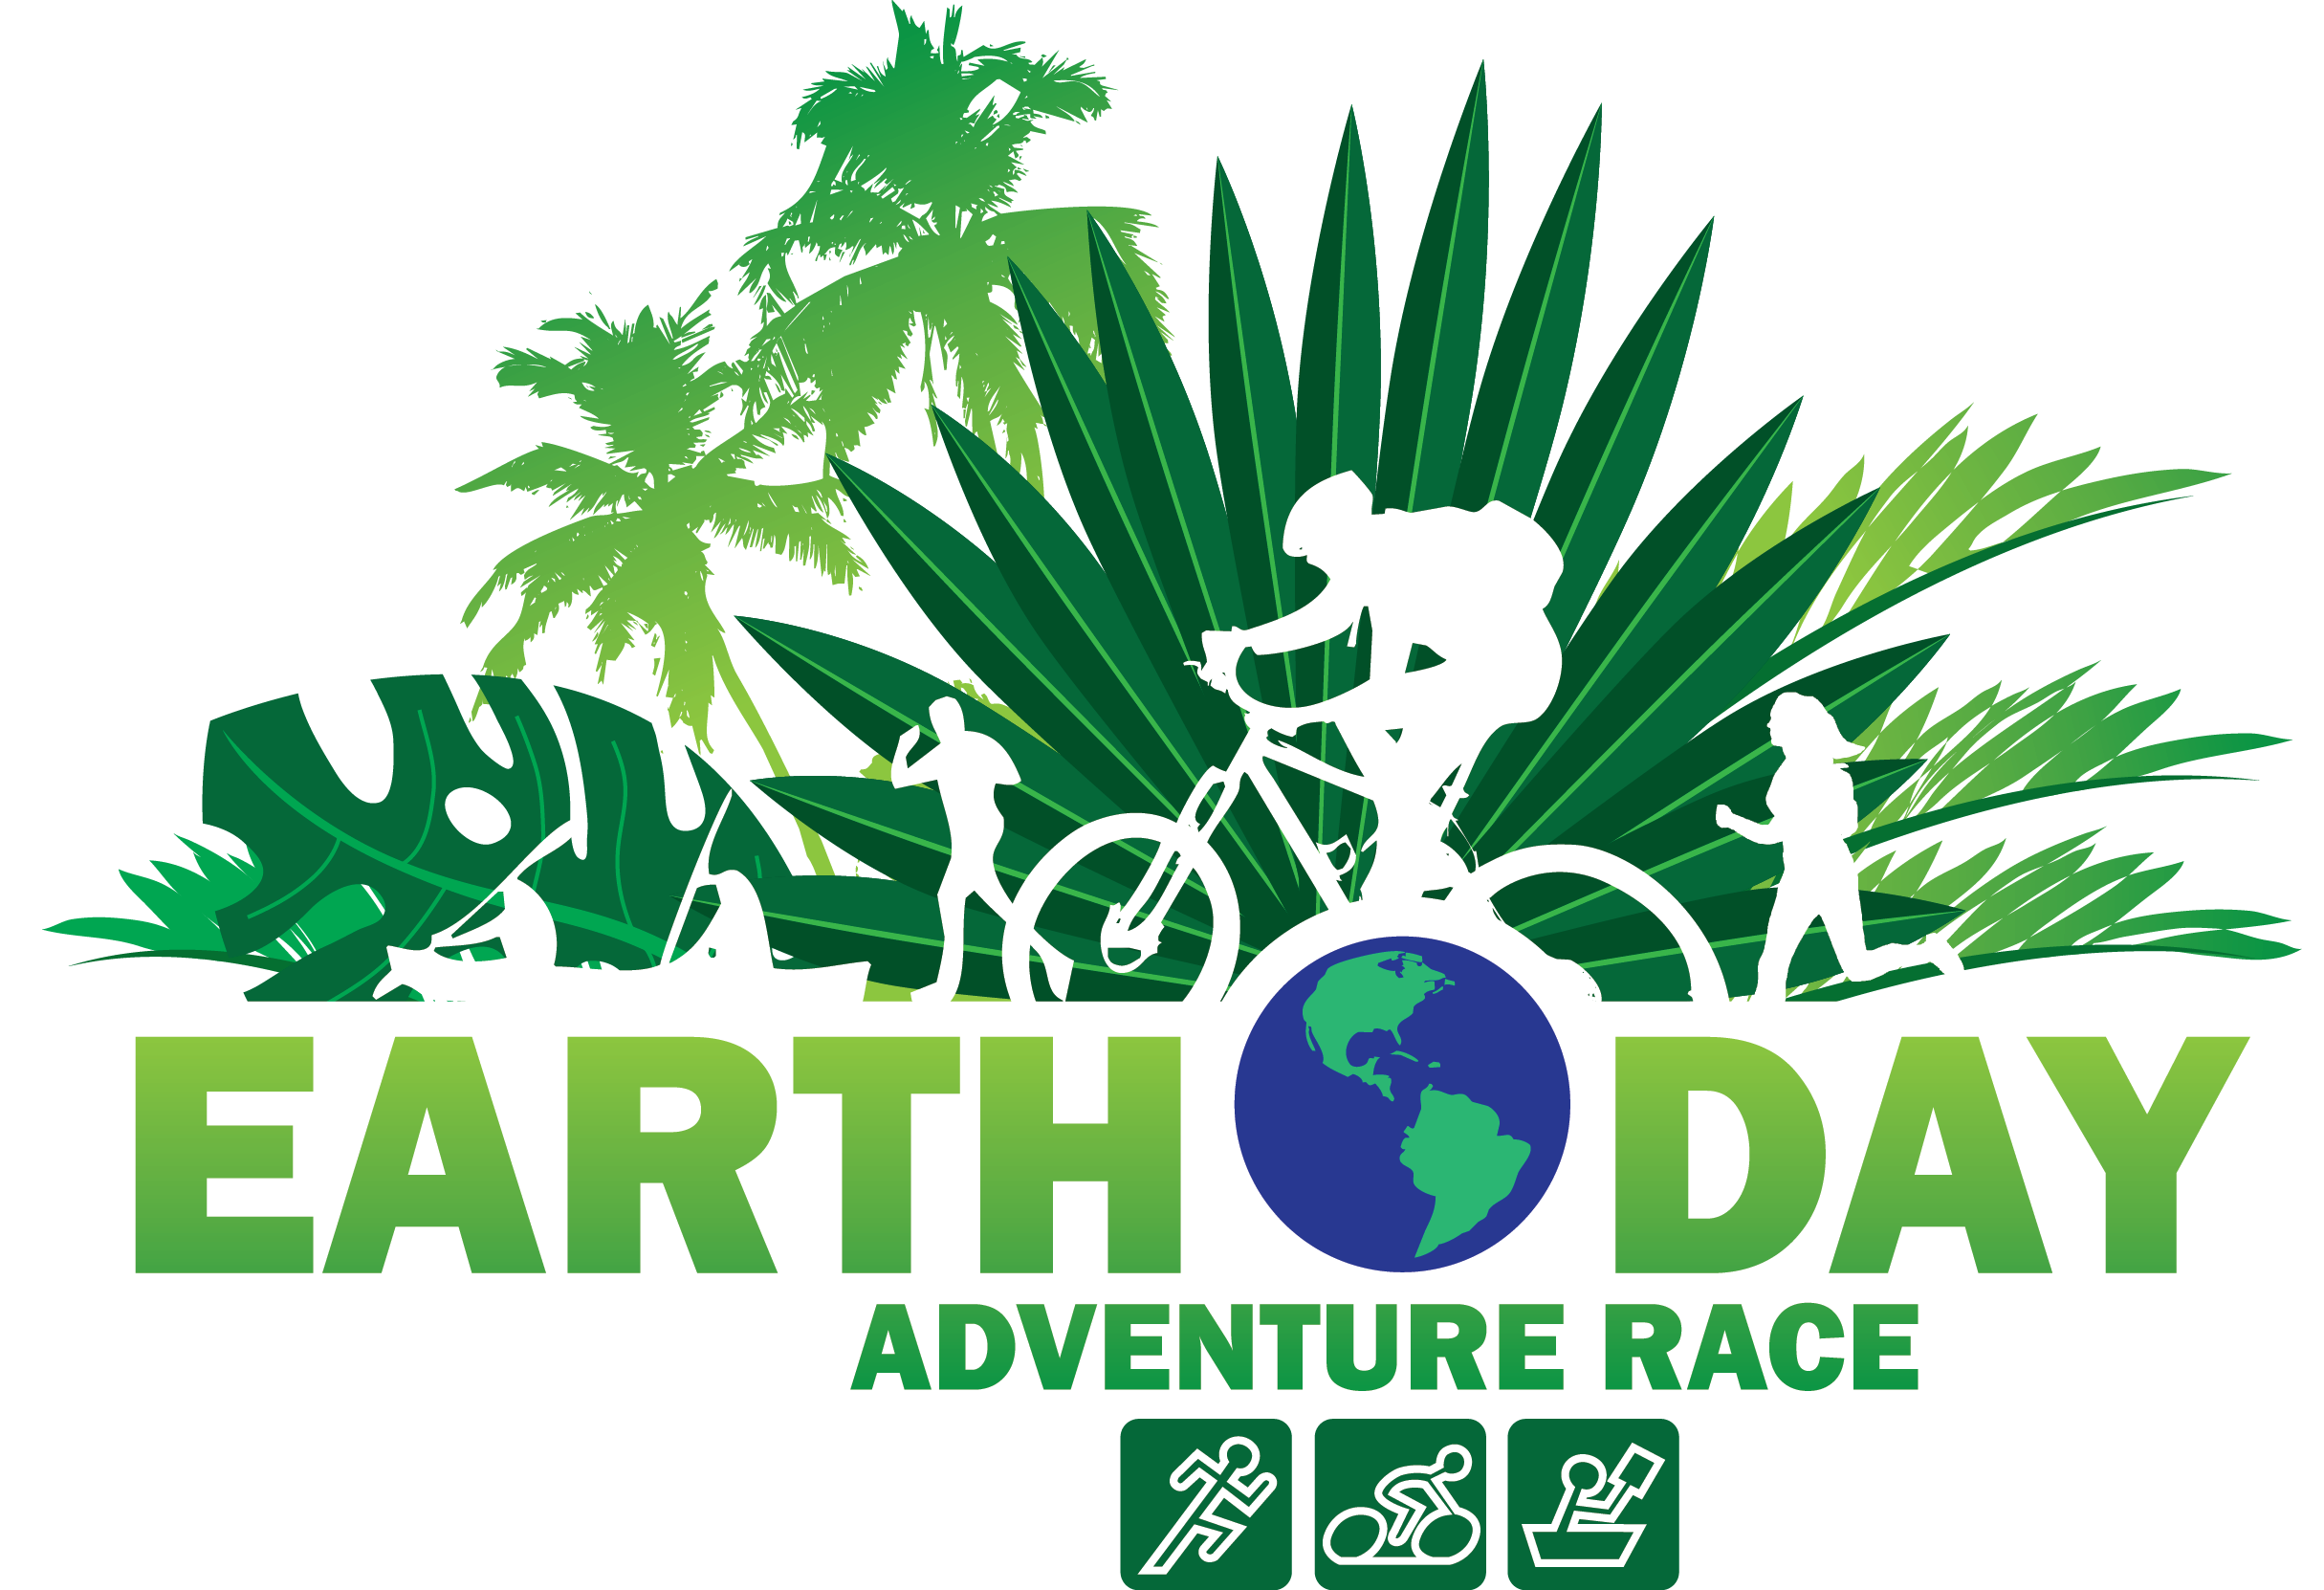 Earth Day Logo Png The earth day adventure race 2016  florida